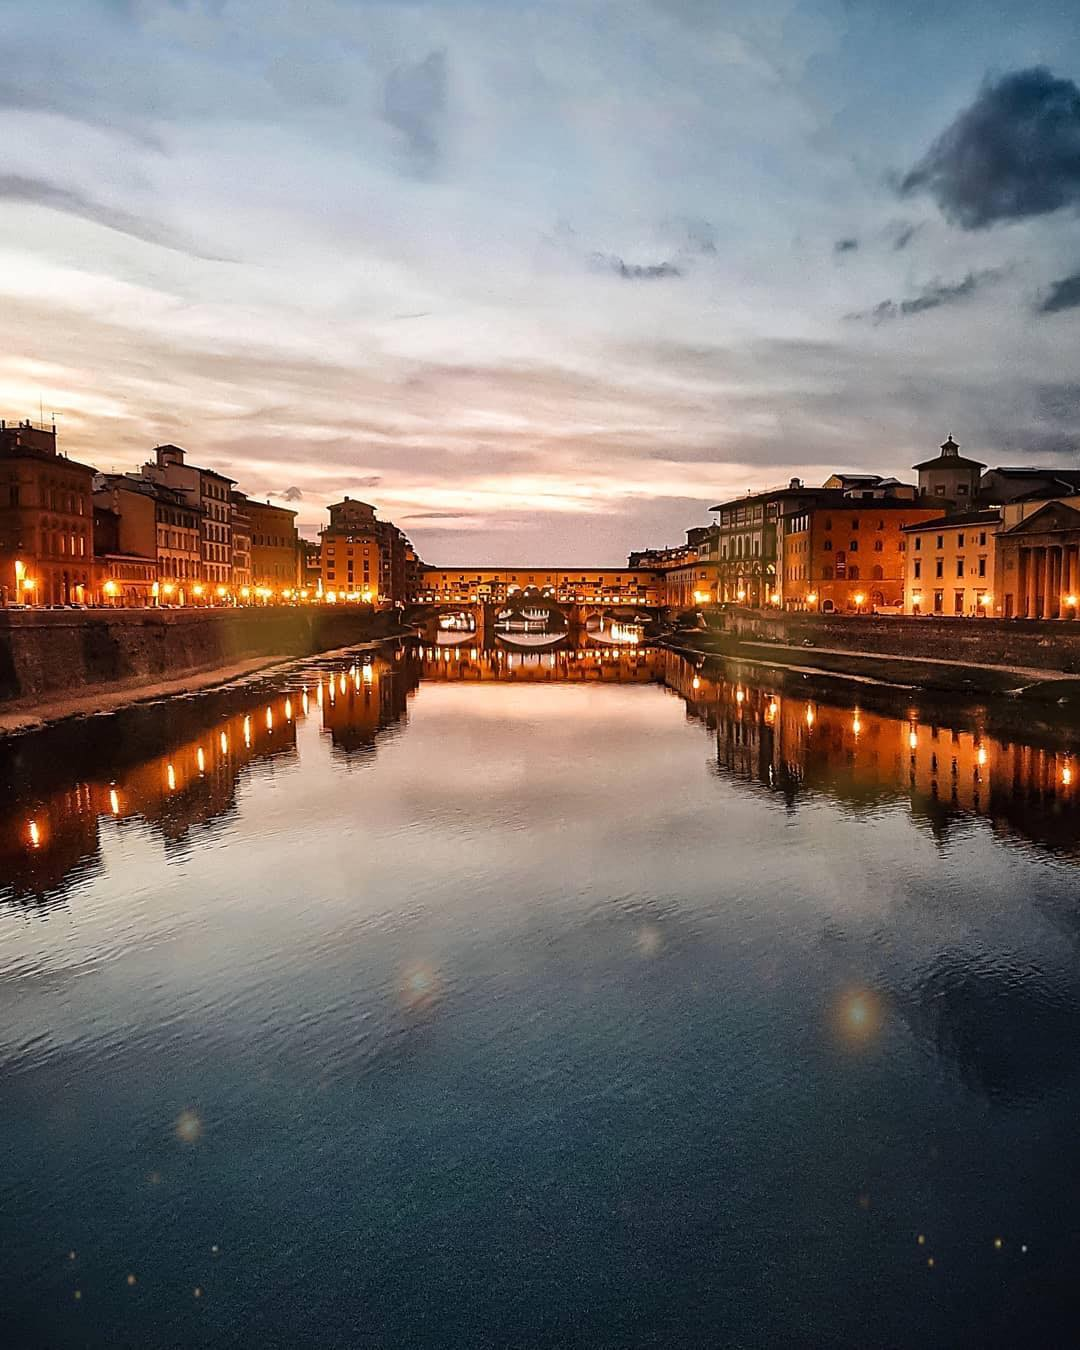 Top 10 Countries That Attract The Most Tourists - Italy